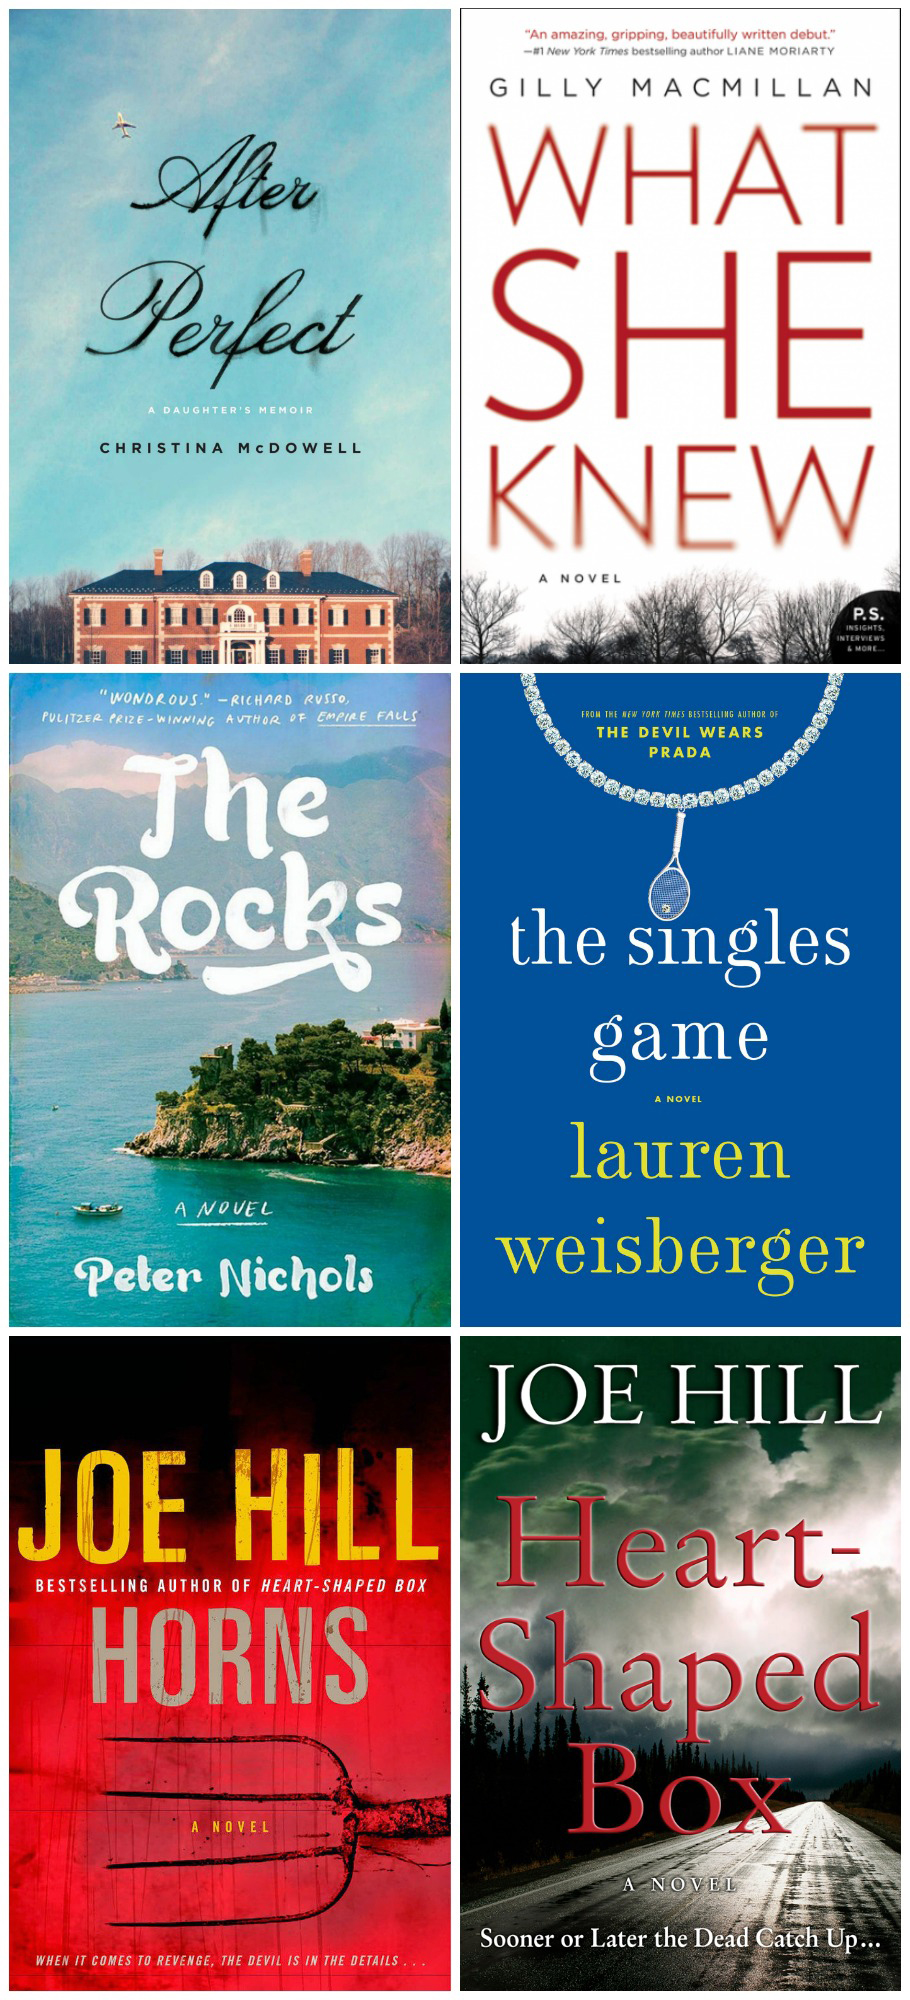 horns what she knew the singles game the rocks book reviews